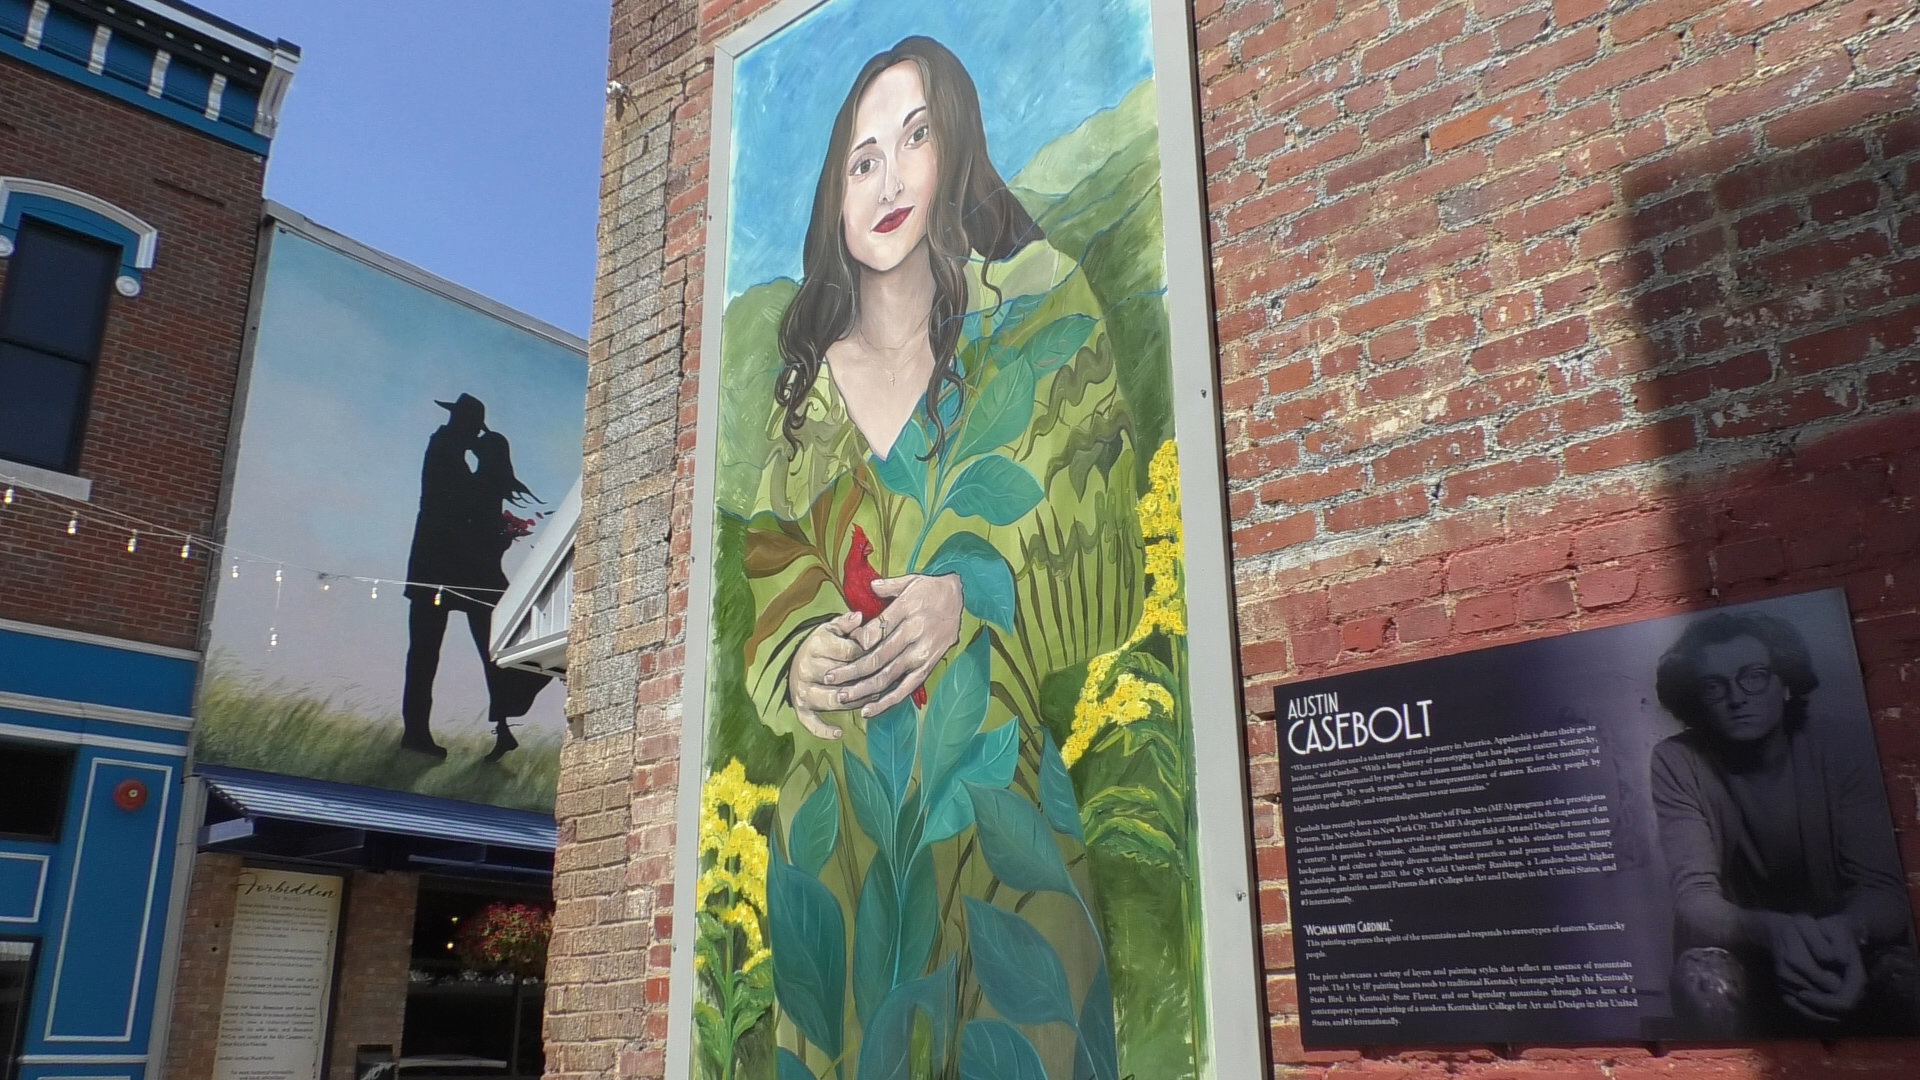 Appalachian culture art piece unveiled in Downtown Pikeville